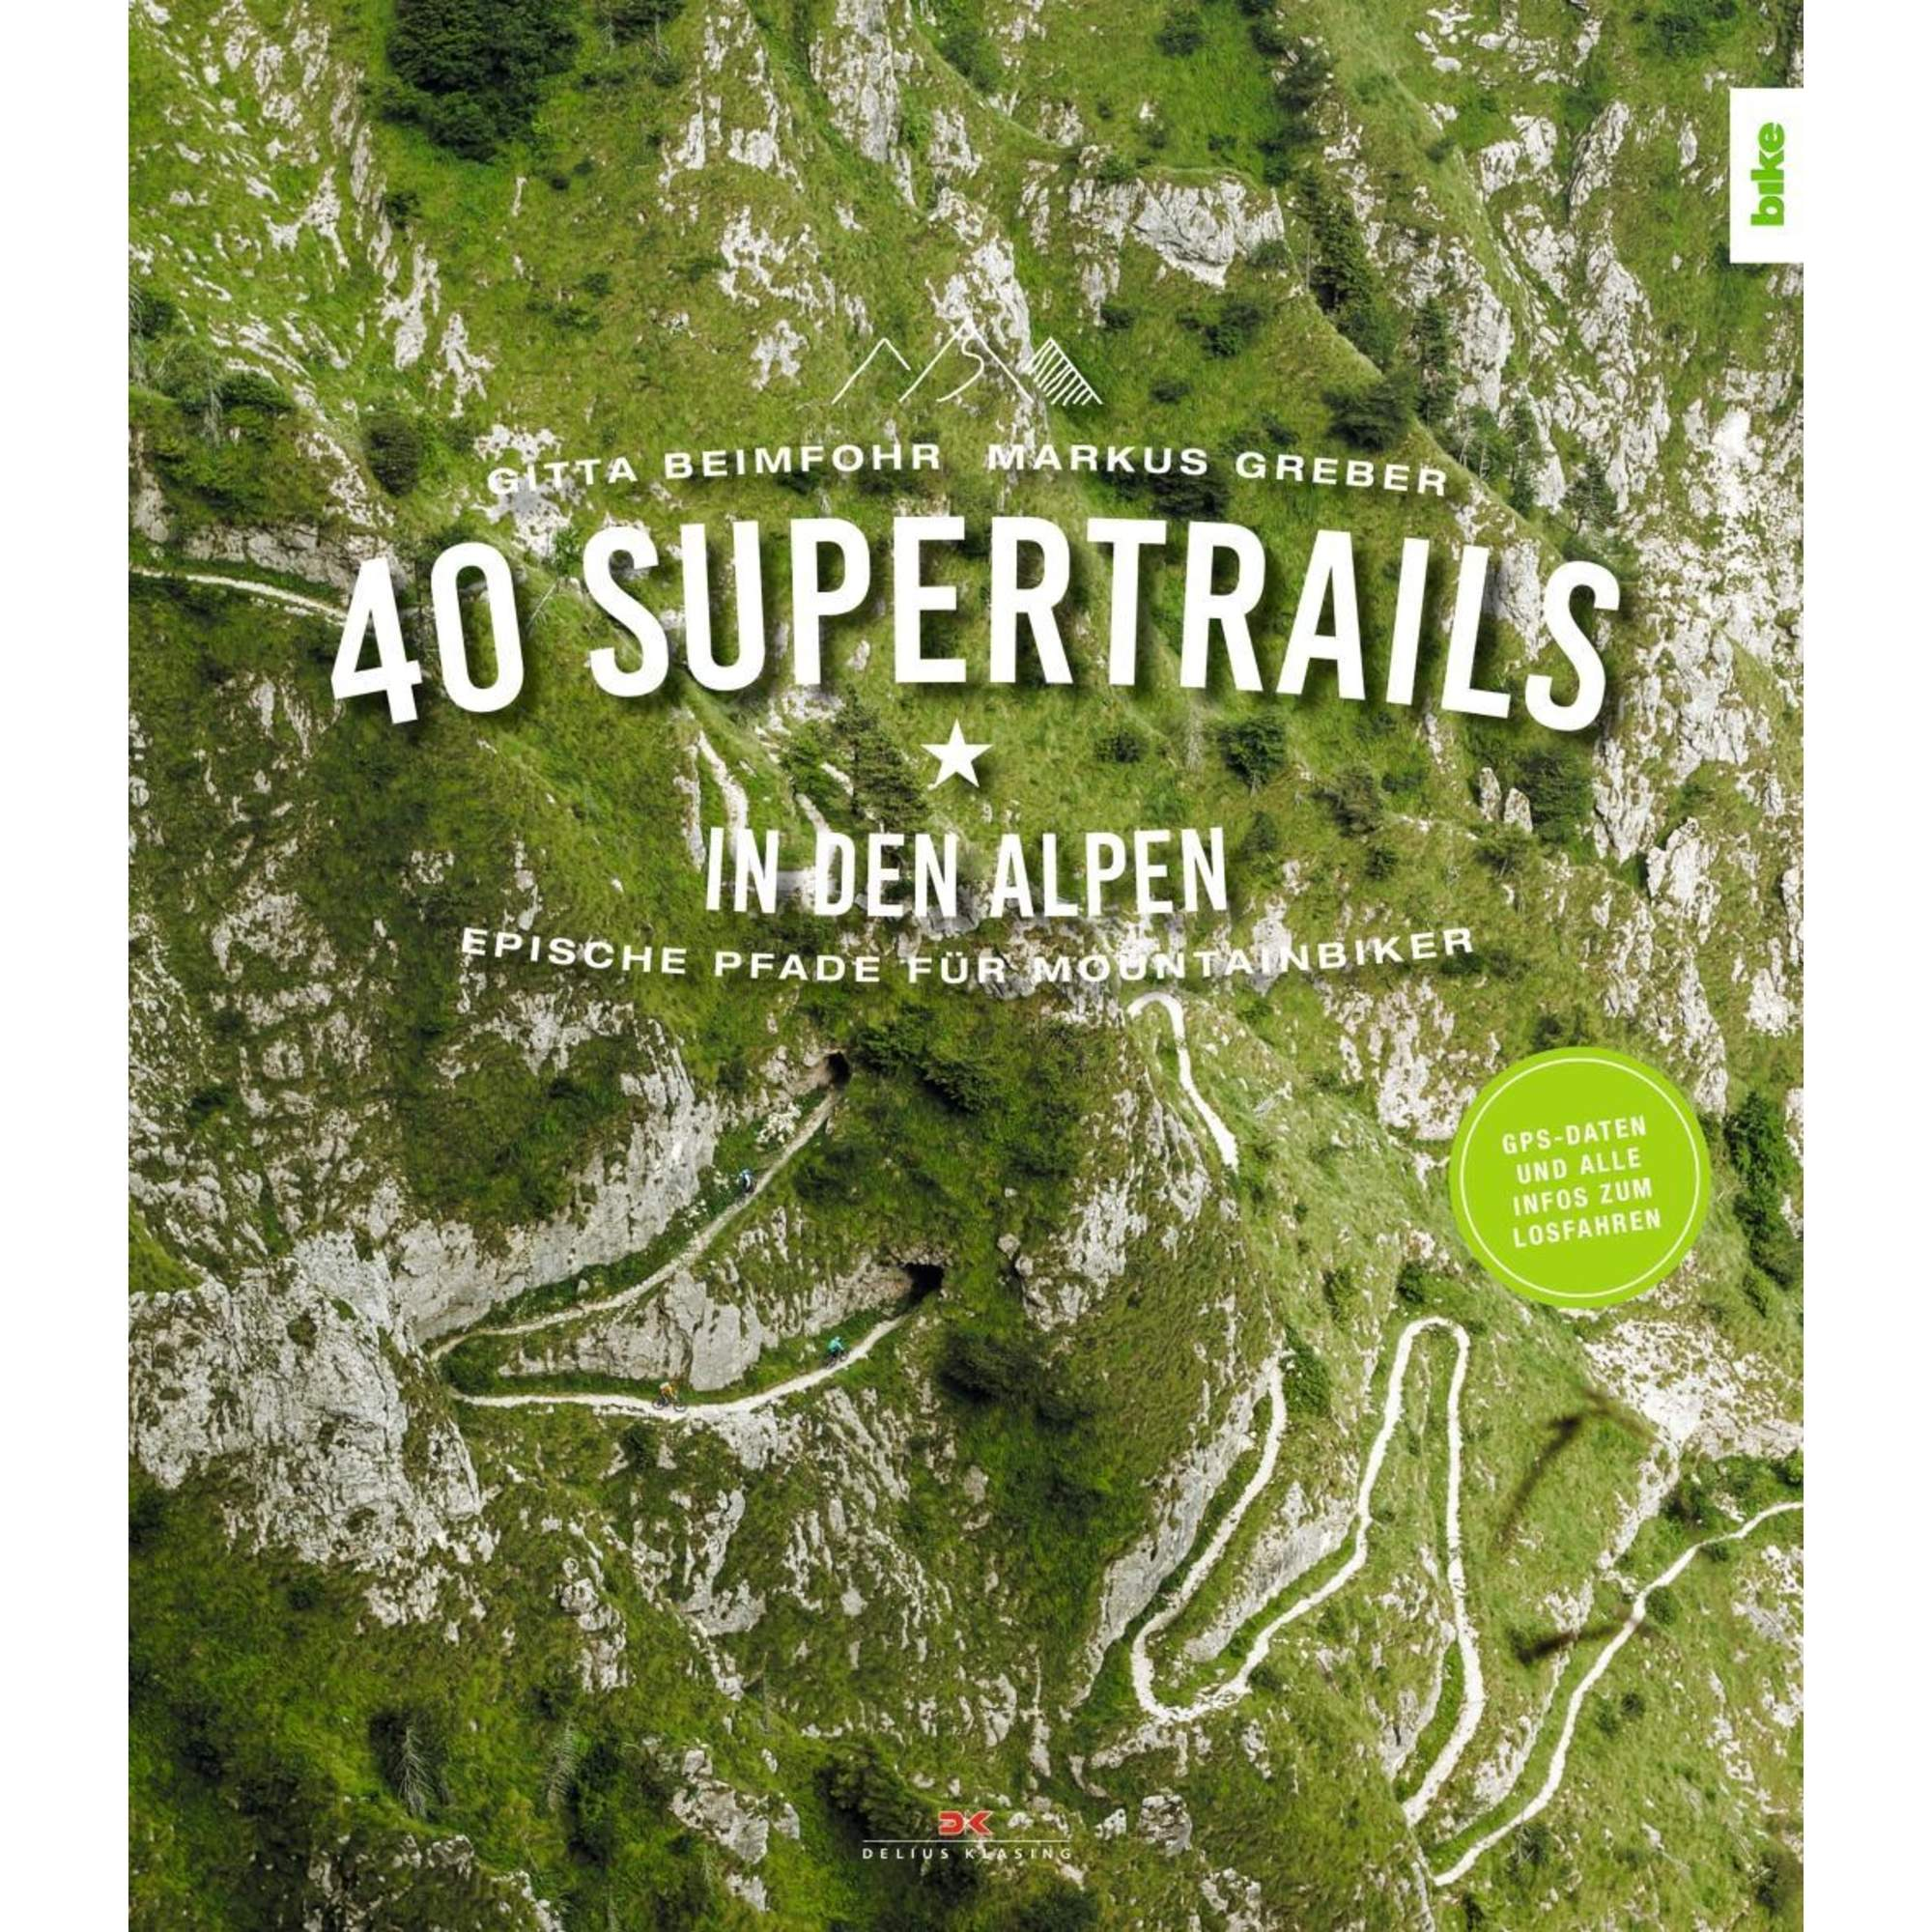 40 Supertrails in den Alpen, 29,90 Euro